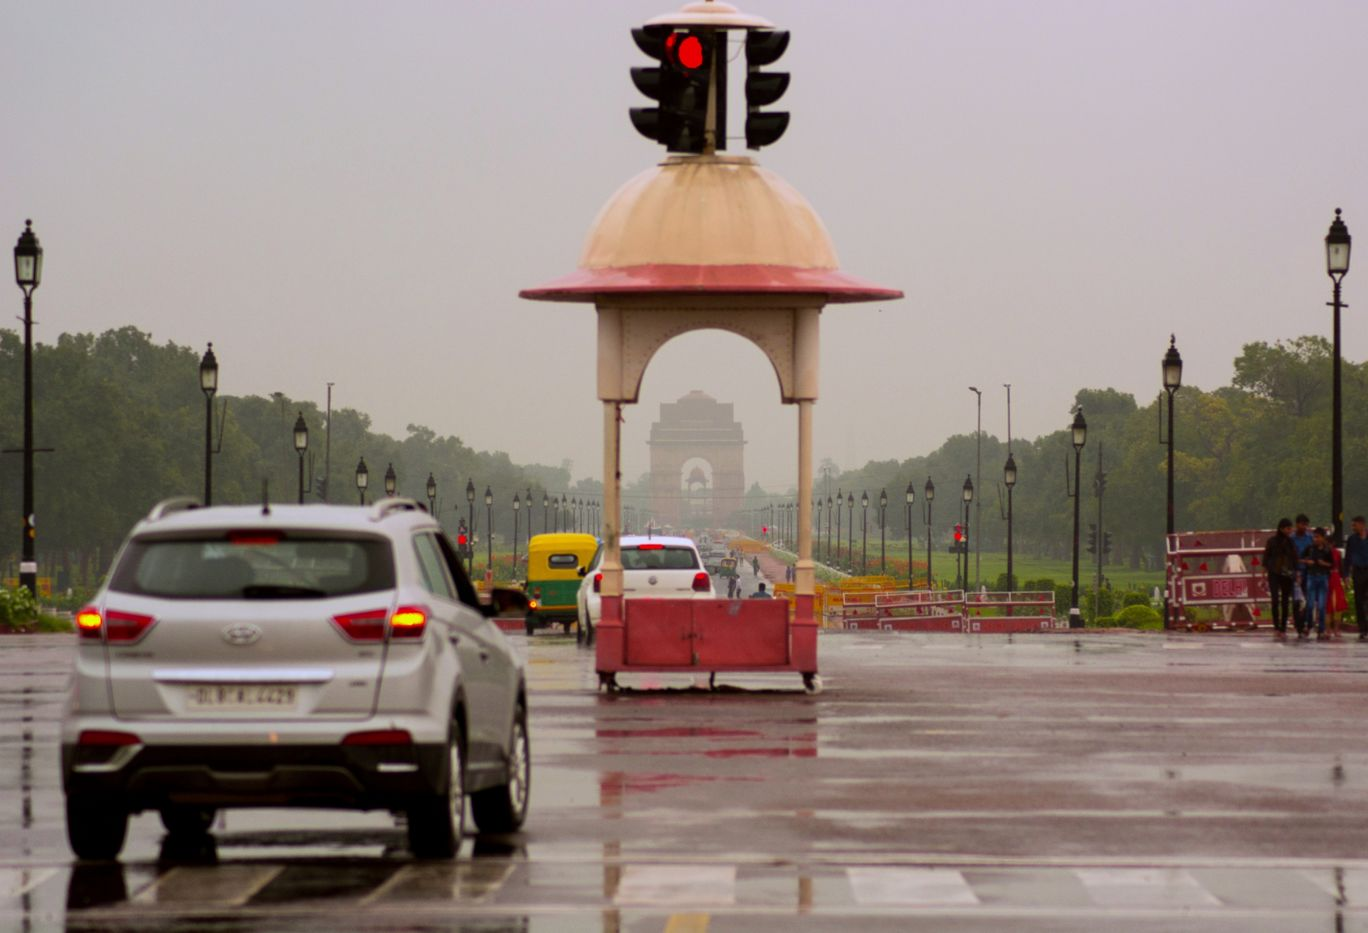 Photo of India Gate By sachin chauhan